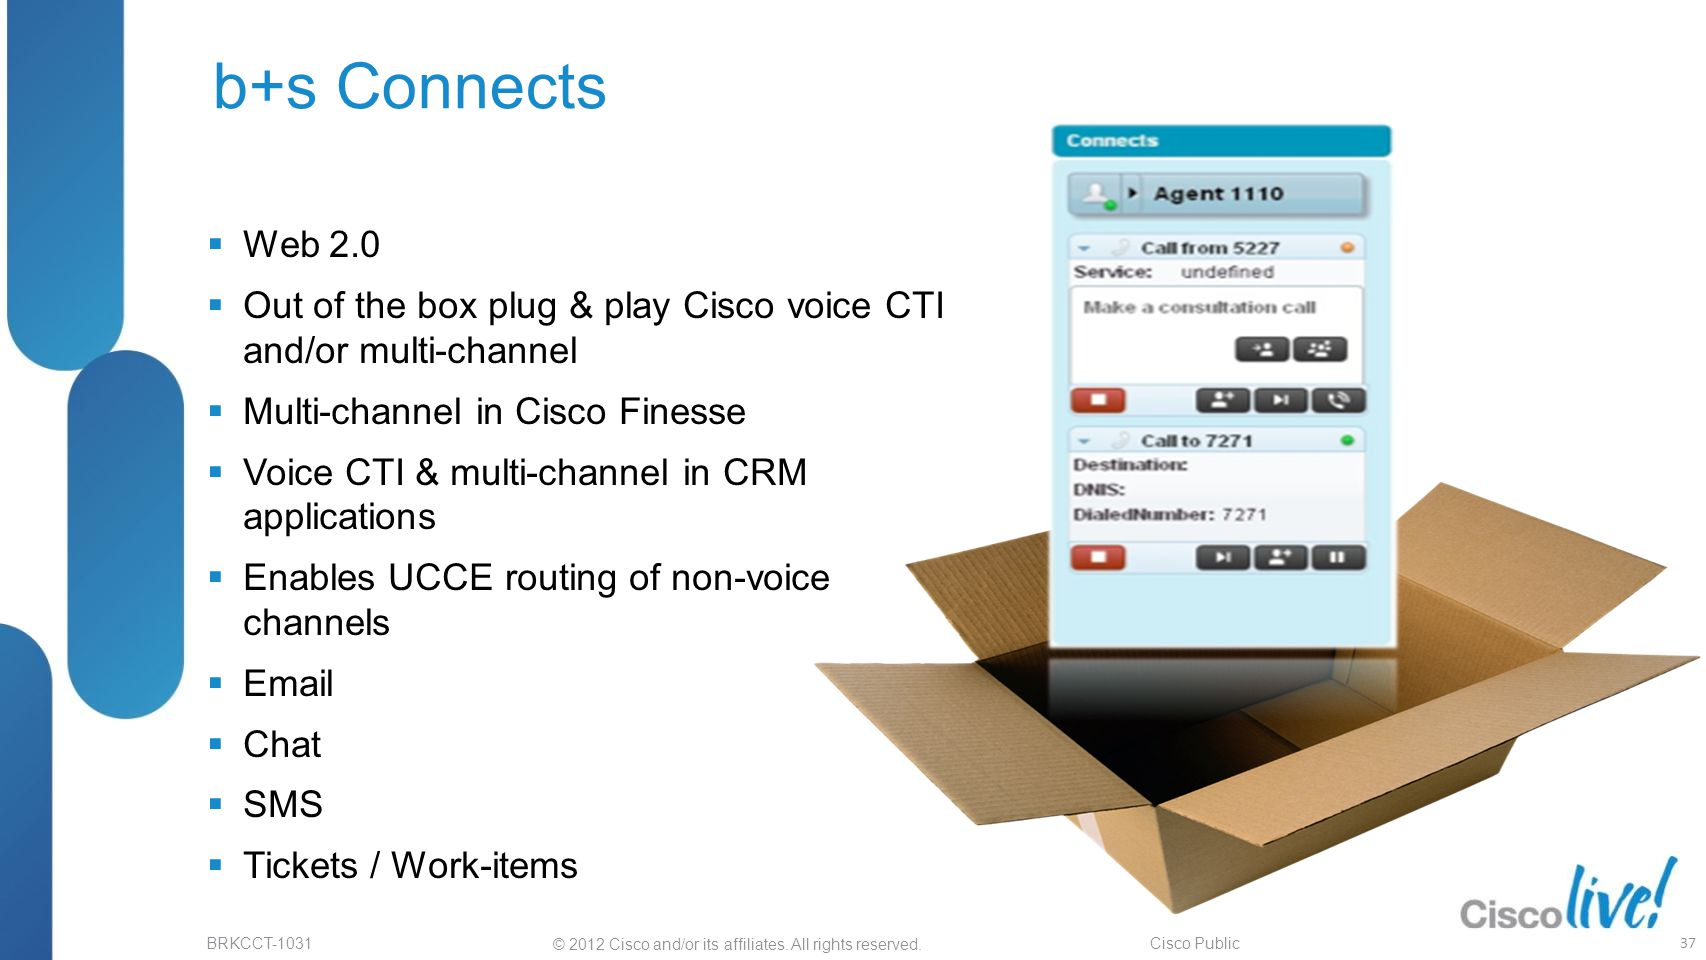 b+s Connects Web 2.0. Out of the box plug & play Cisco voice CTI and/or multi-channel. Multi-channel in Cisco Finesse.